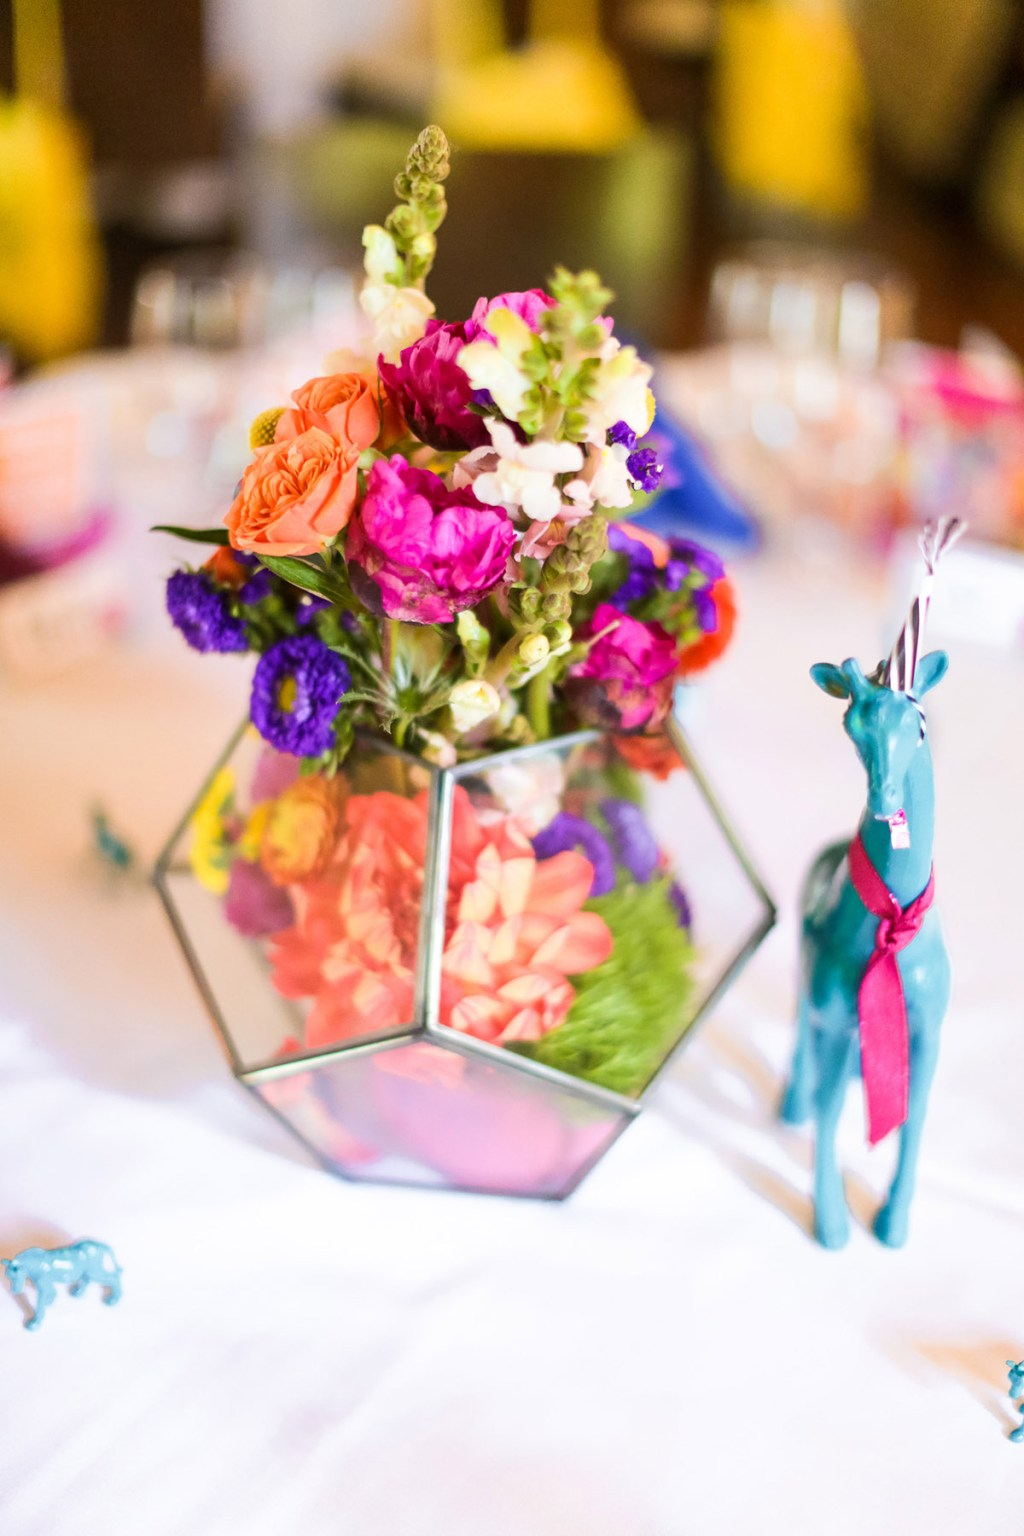 Bright and Cheerful 10th Anniversary Party Decor from A Well Crafted Party, photo by Mary Boyden